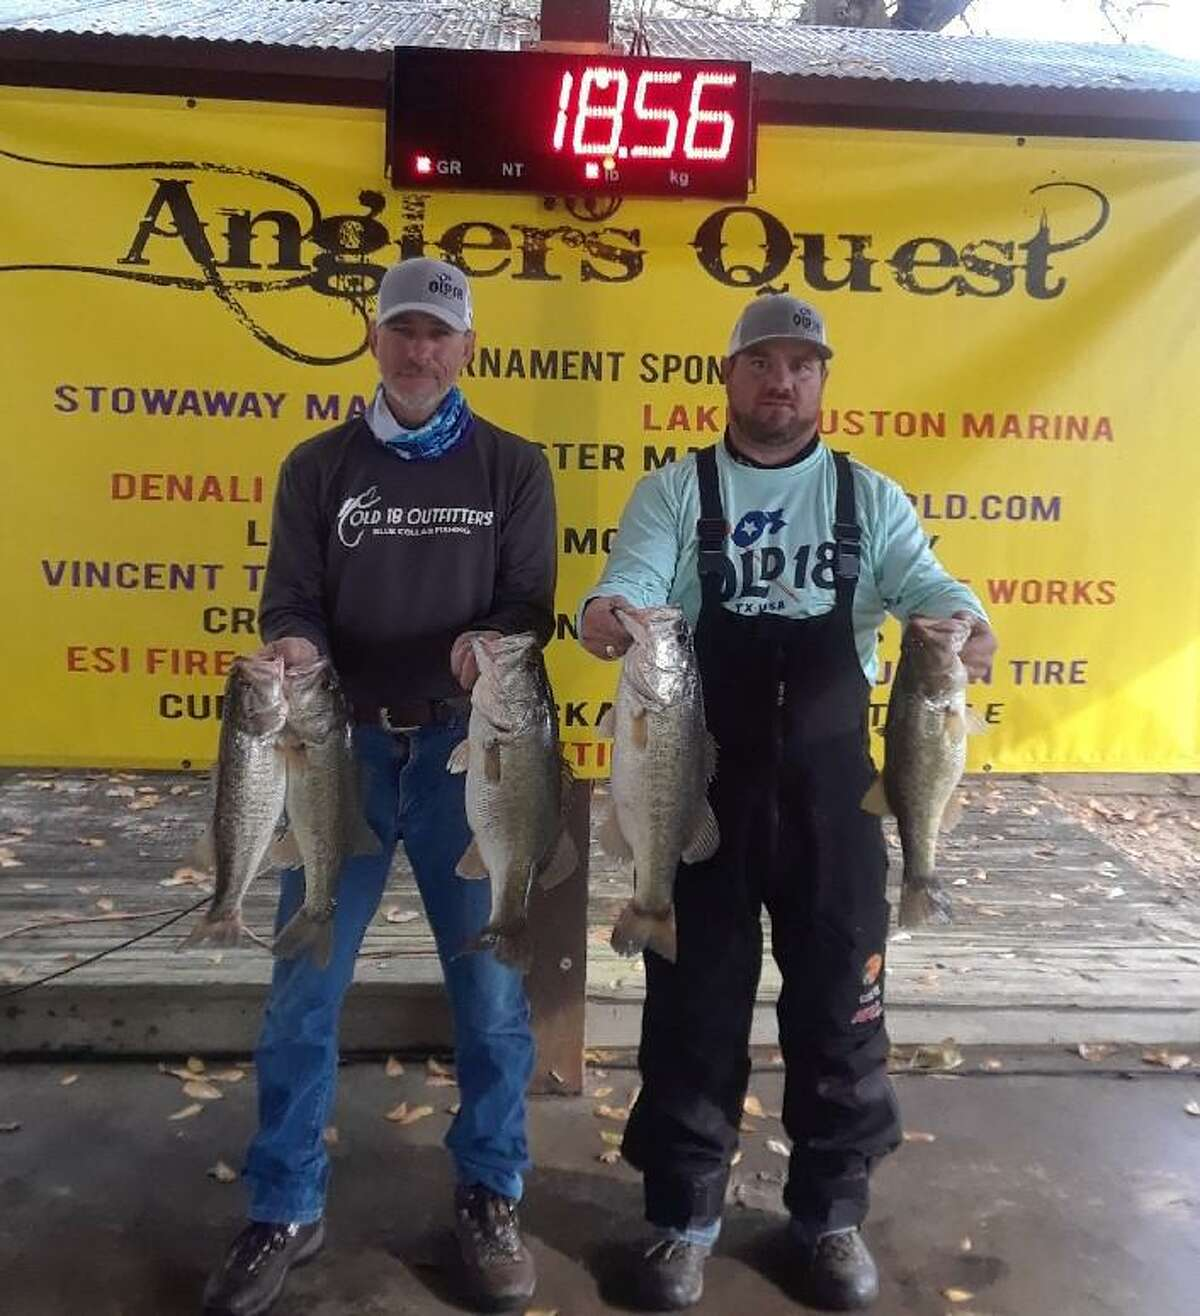 Tony Zorn won the Anglers Quest Team Tournament #1 with a total weight of 18.56 pounds.